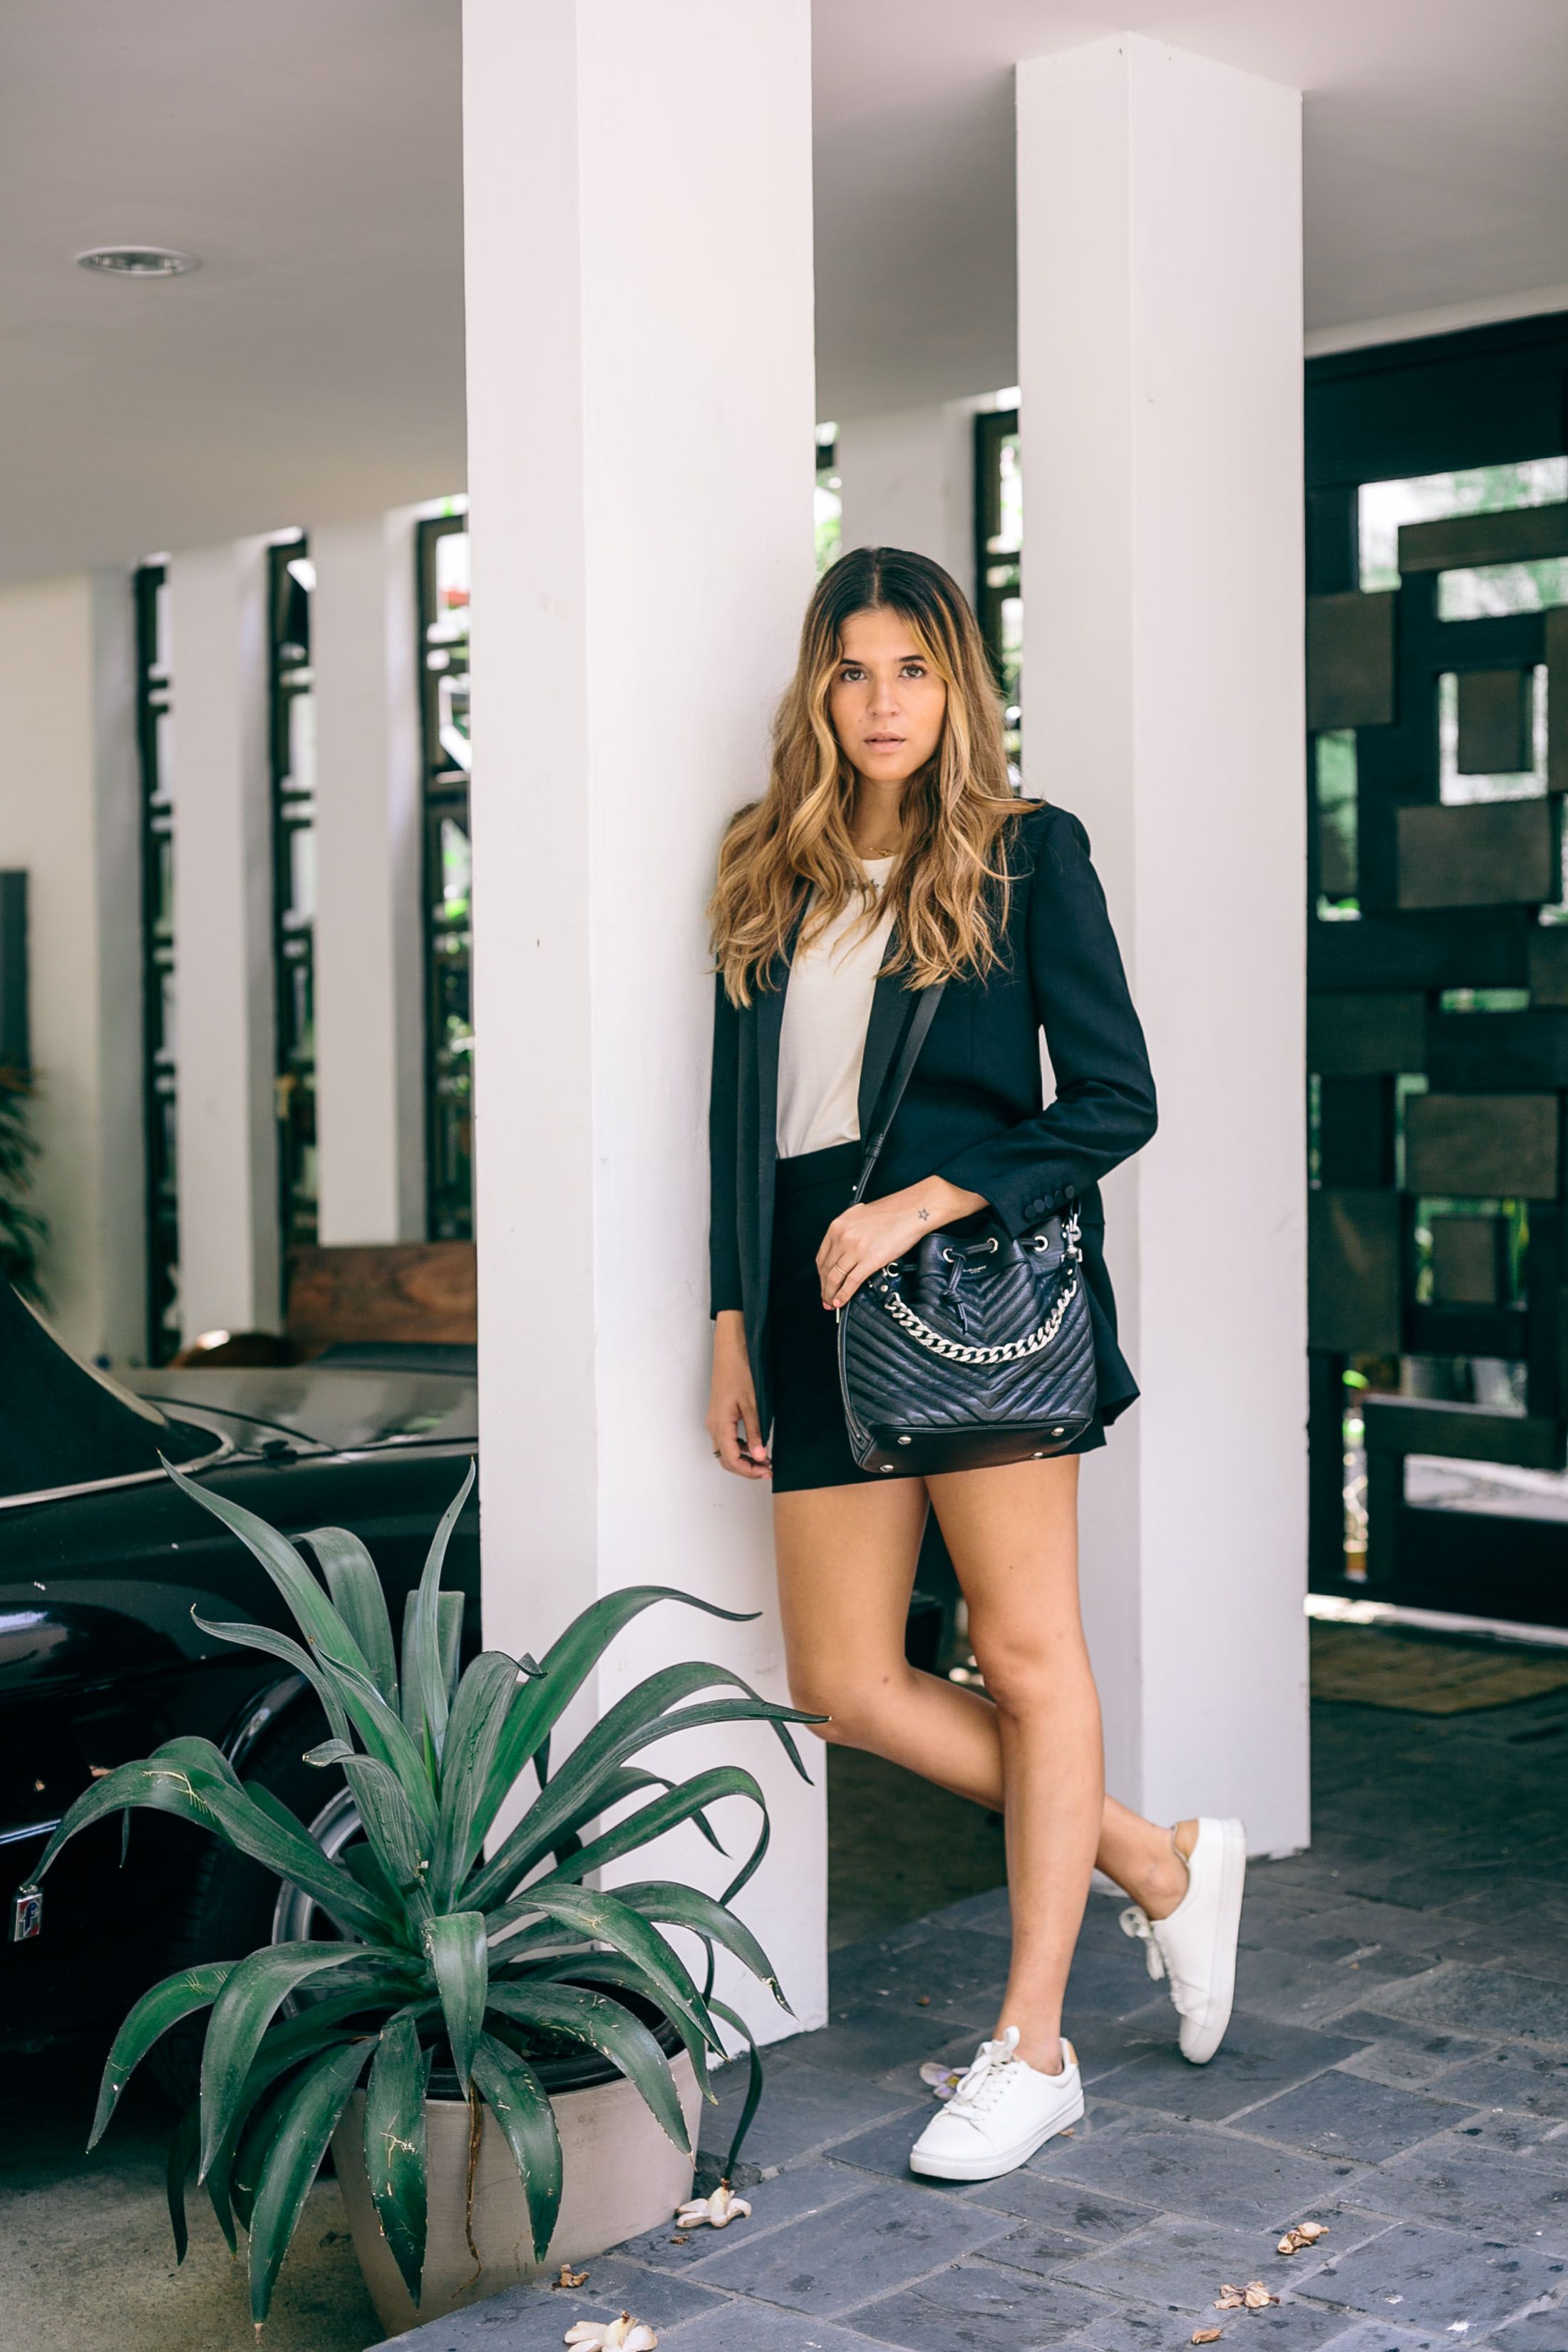 Reduction - stan smith outfit ideas